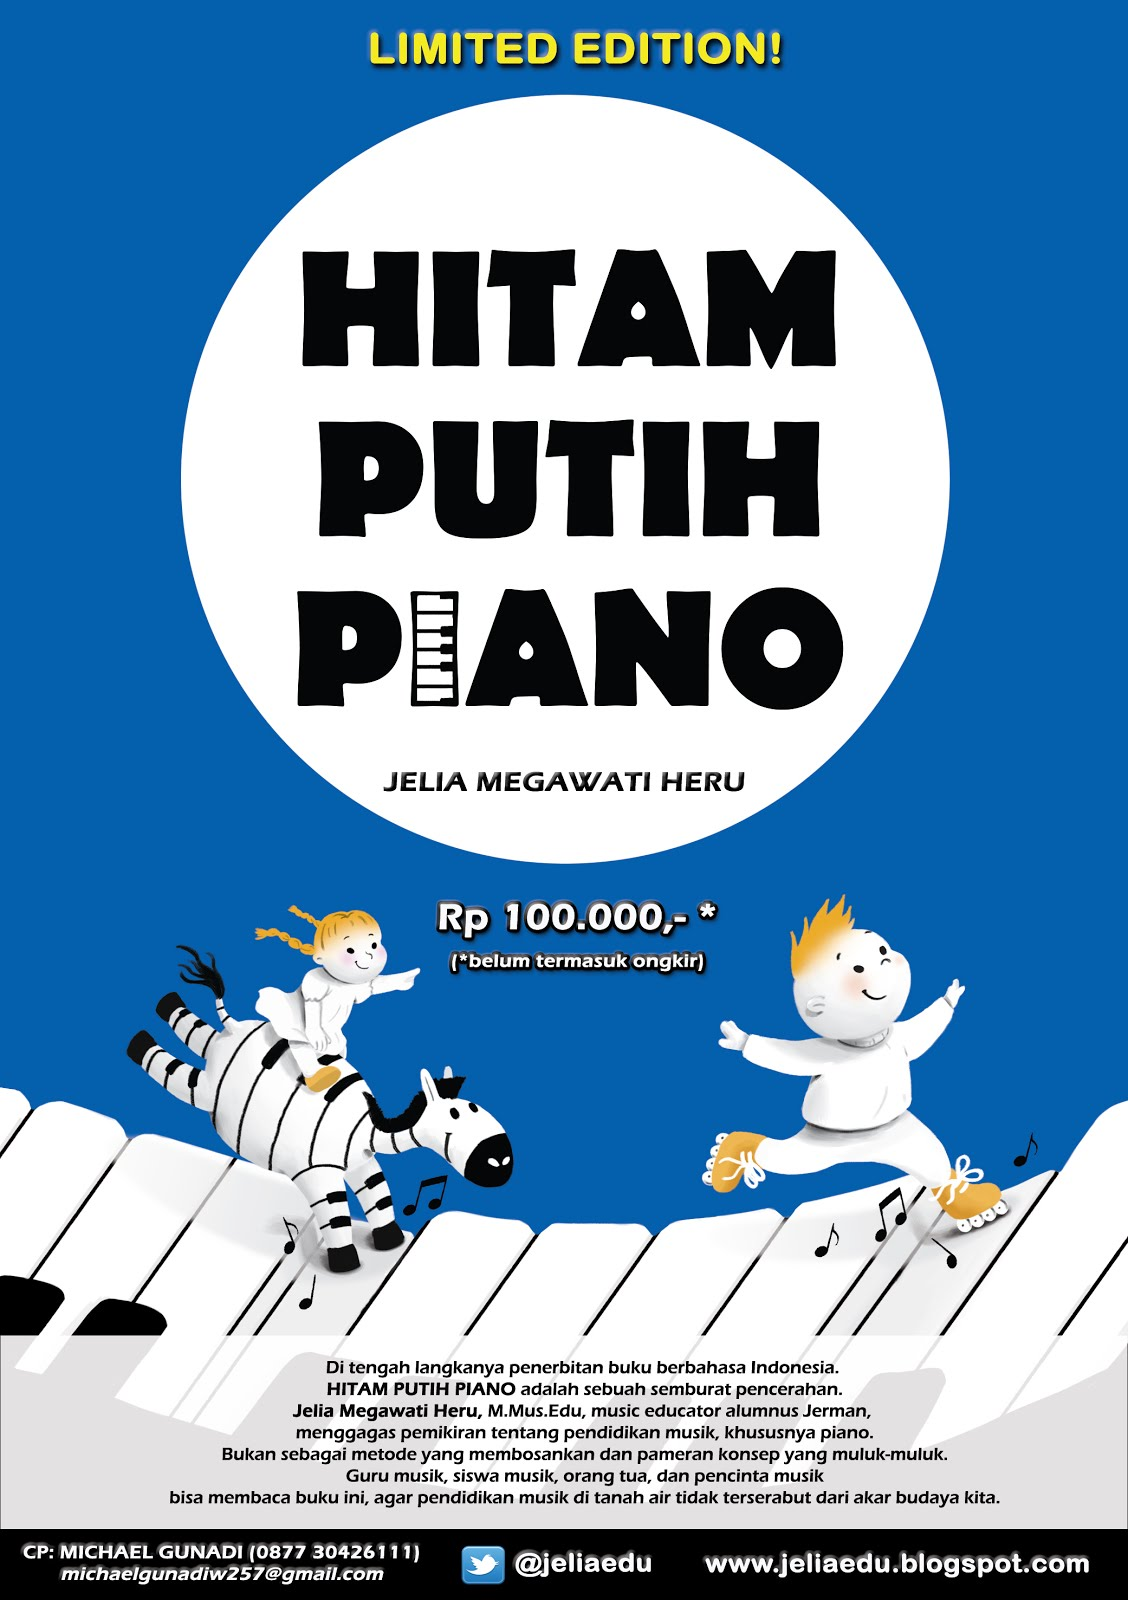 "BEST SELLER ""HITAM PUTIH PIANO"" @ Shopee"